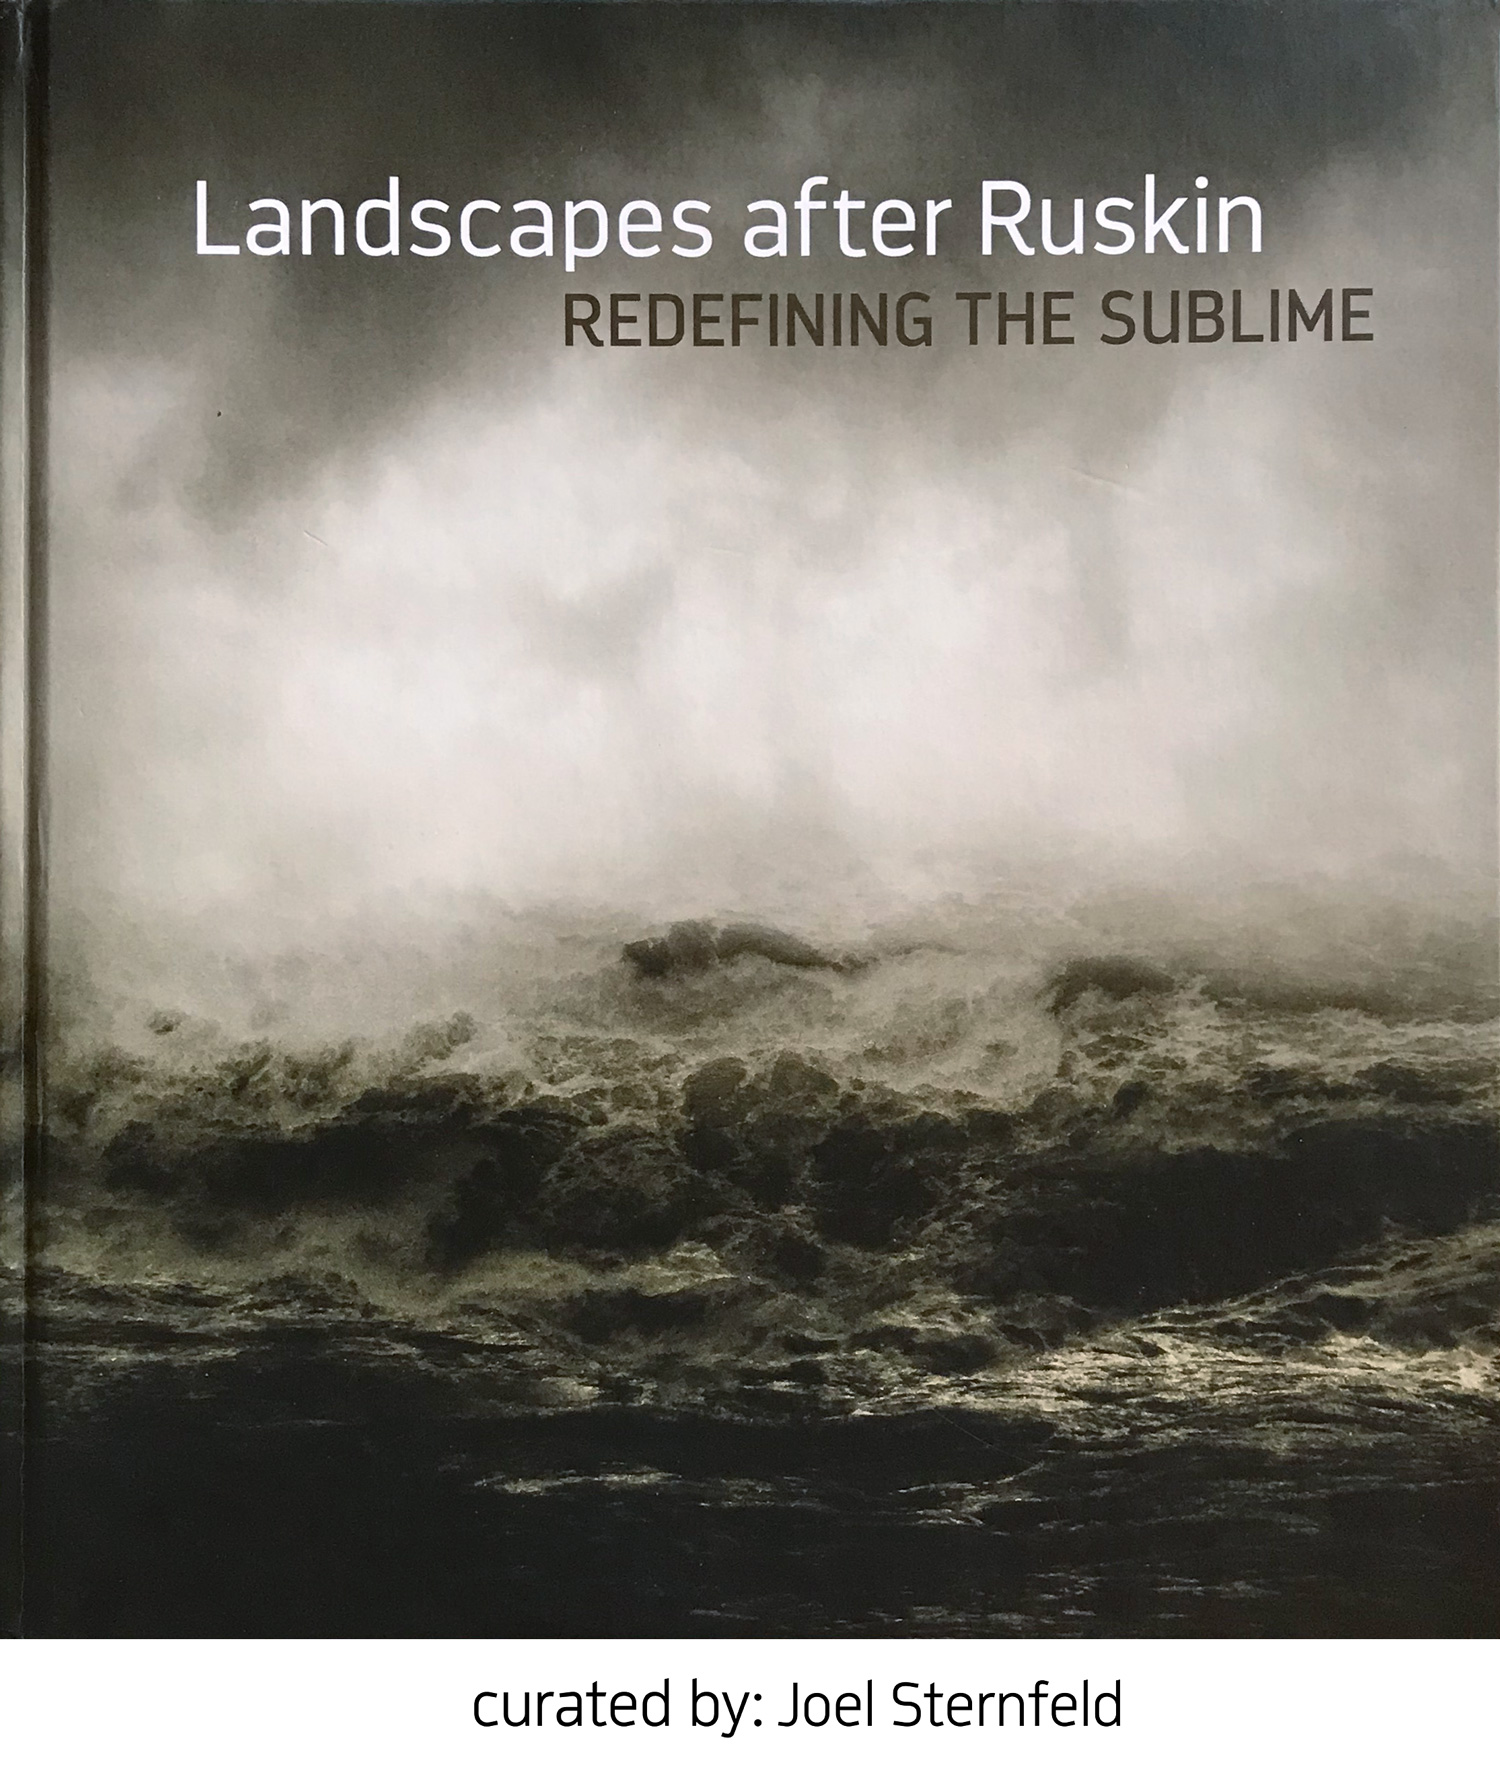 Landscapes-after-Ruskin---Refefining-the-sublime.jpg